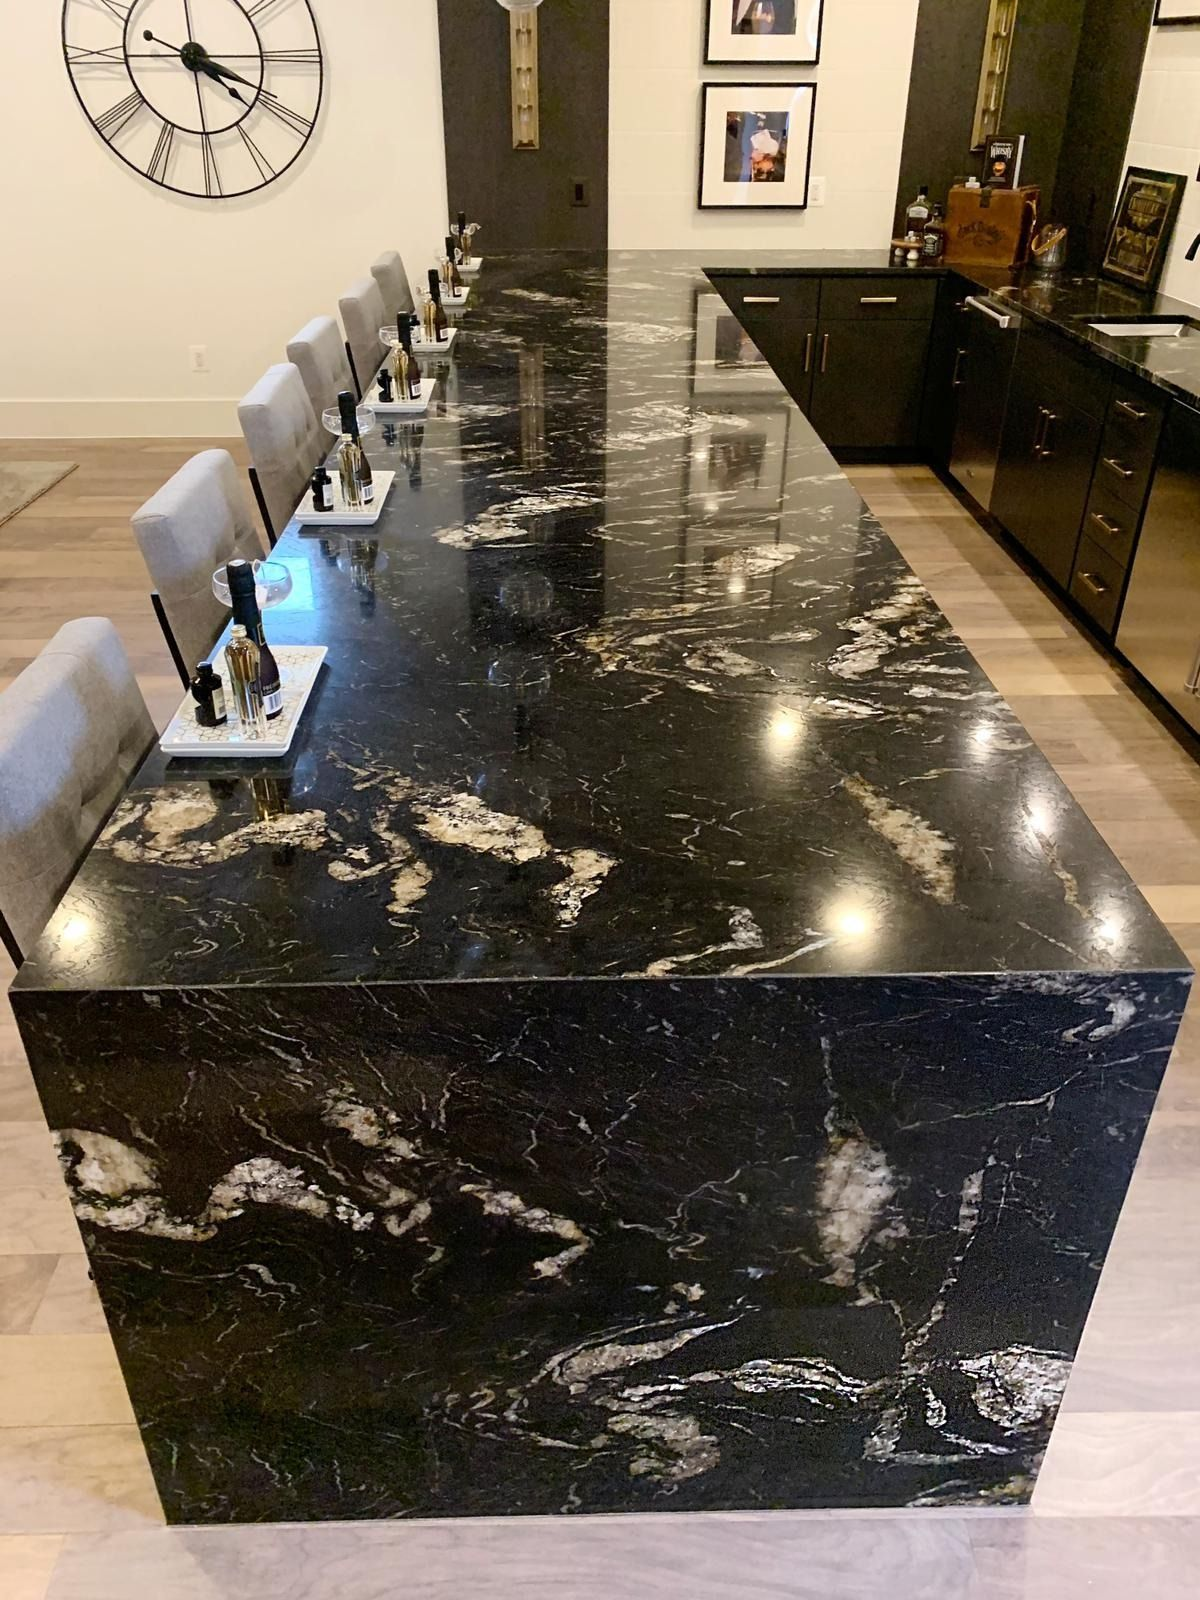 Titanium Polished Granite Slab Random 1 1 4 In 2020 Titanium Granite Dark Granite Countertops Granite Countertops Kitchen